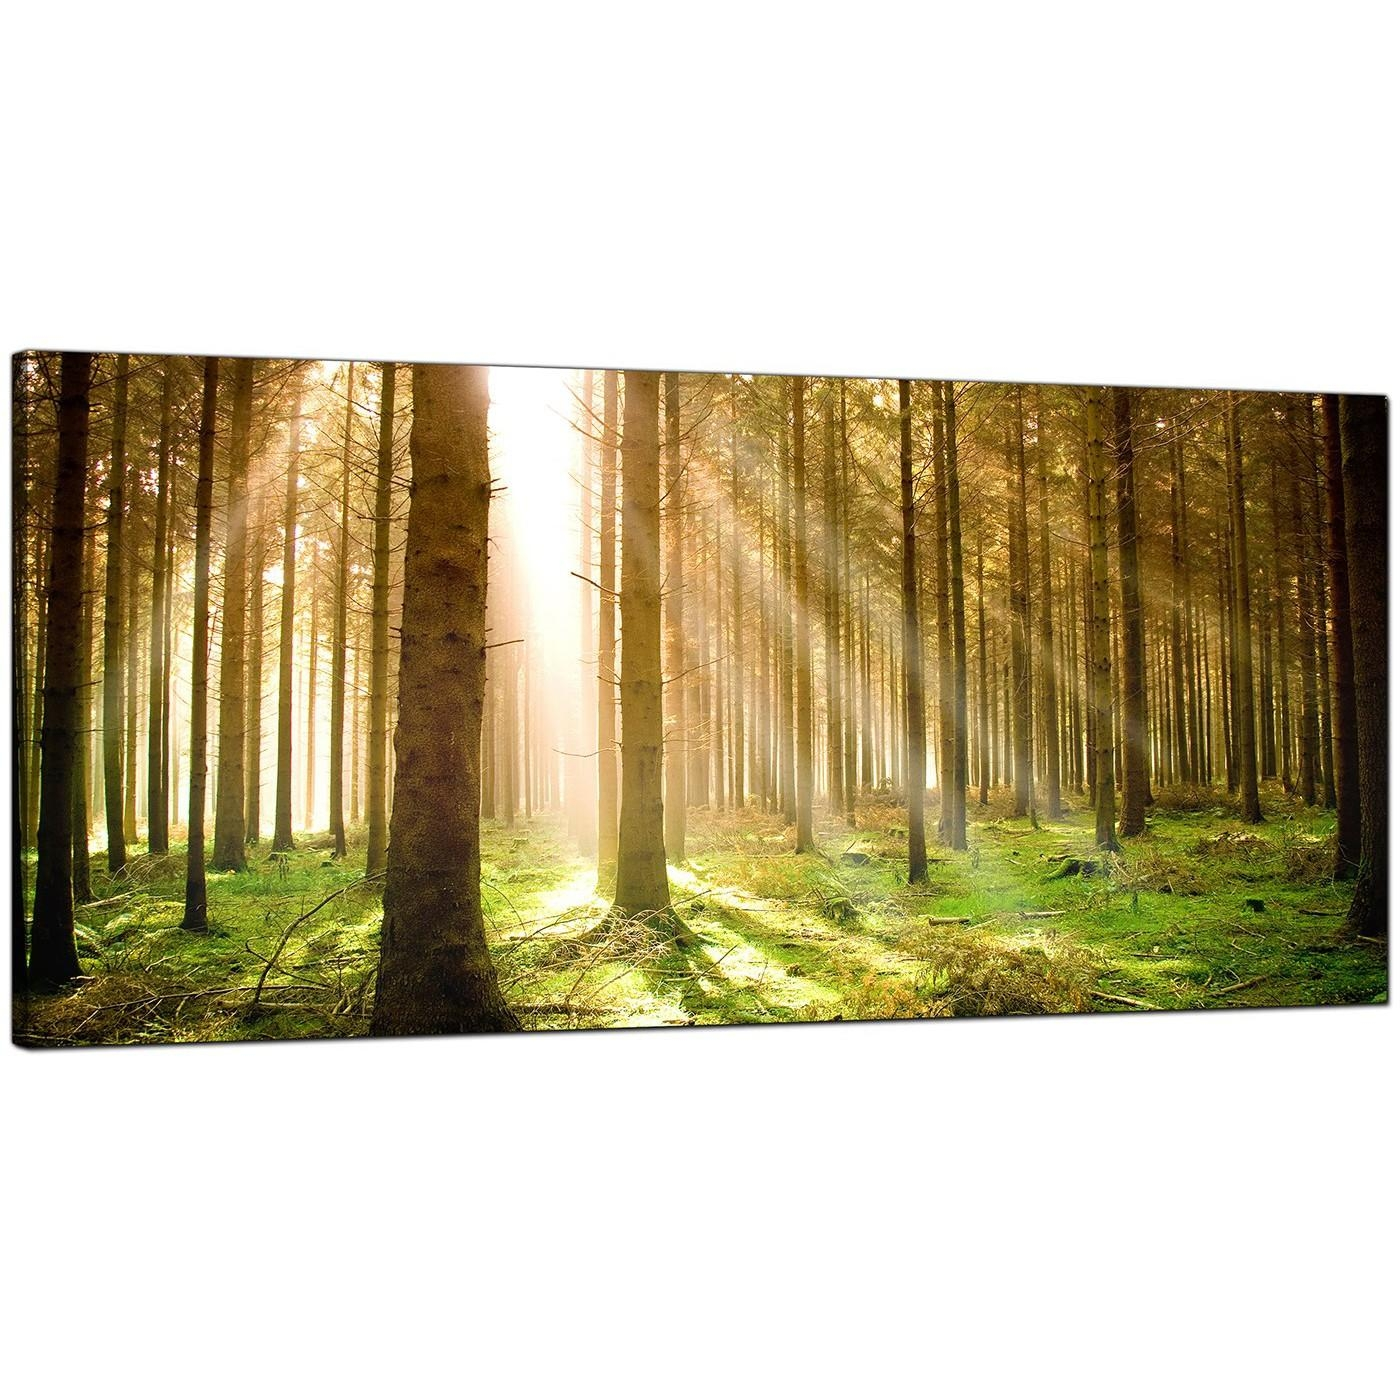 20 Best Inexpensive Canvas Wall Art | Wall Art Ideas